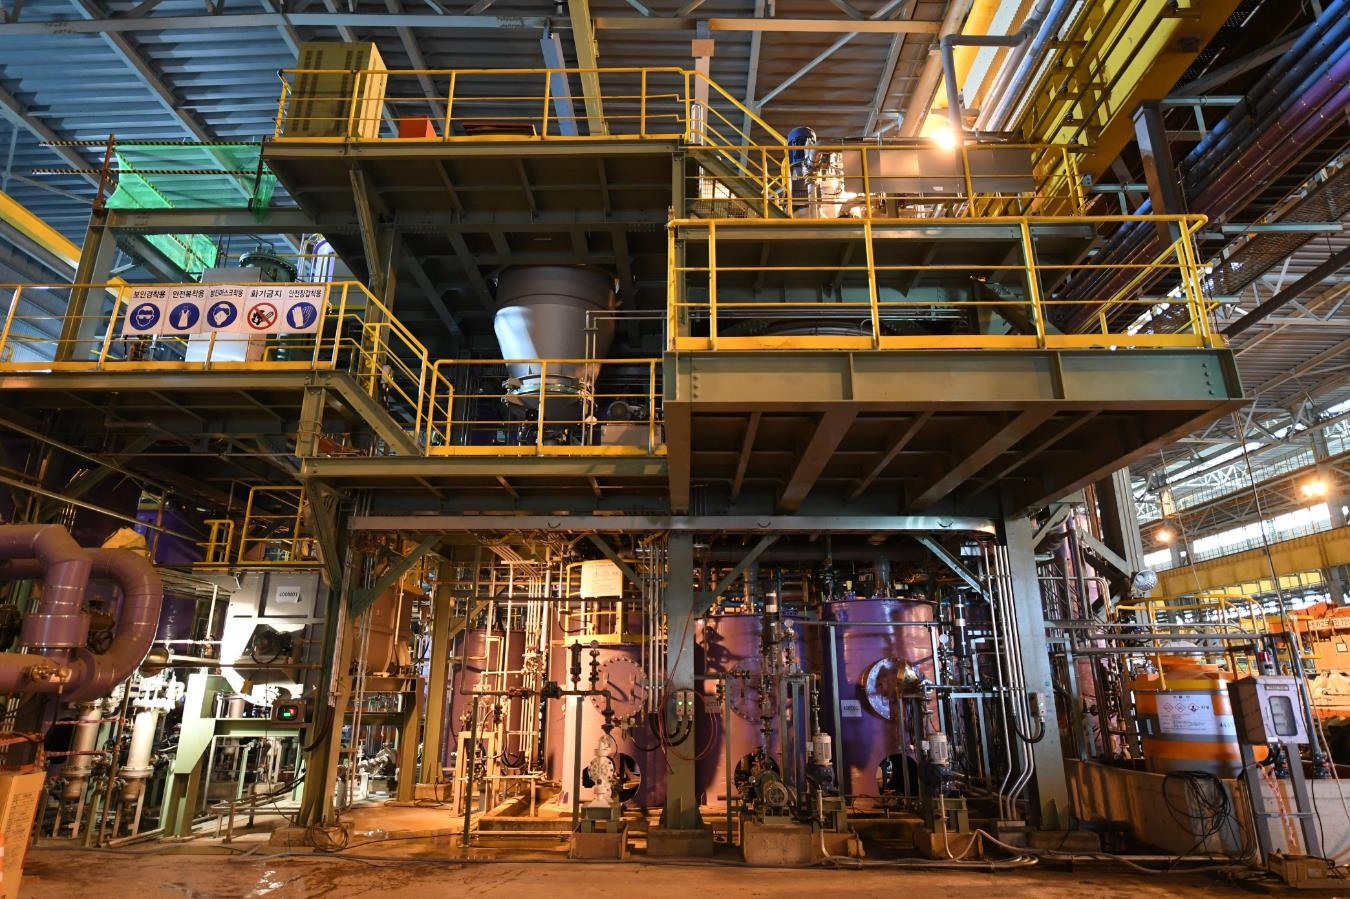 POSCO is producing lithium hydroxide for electric vehicles